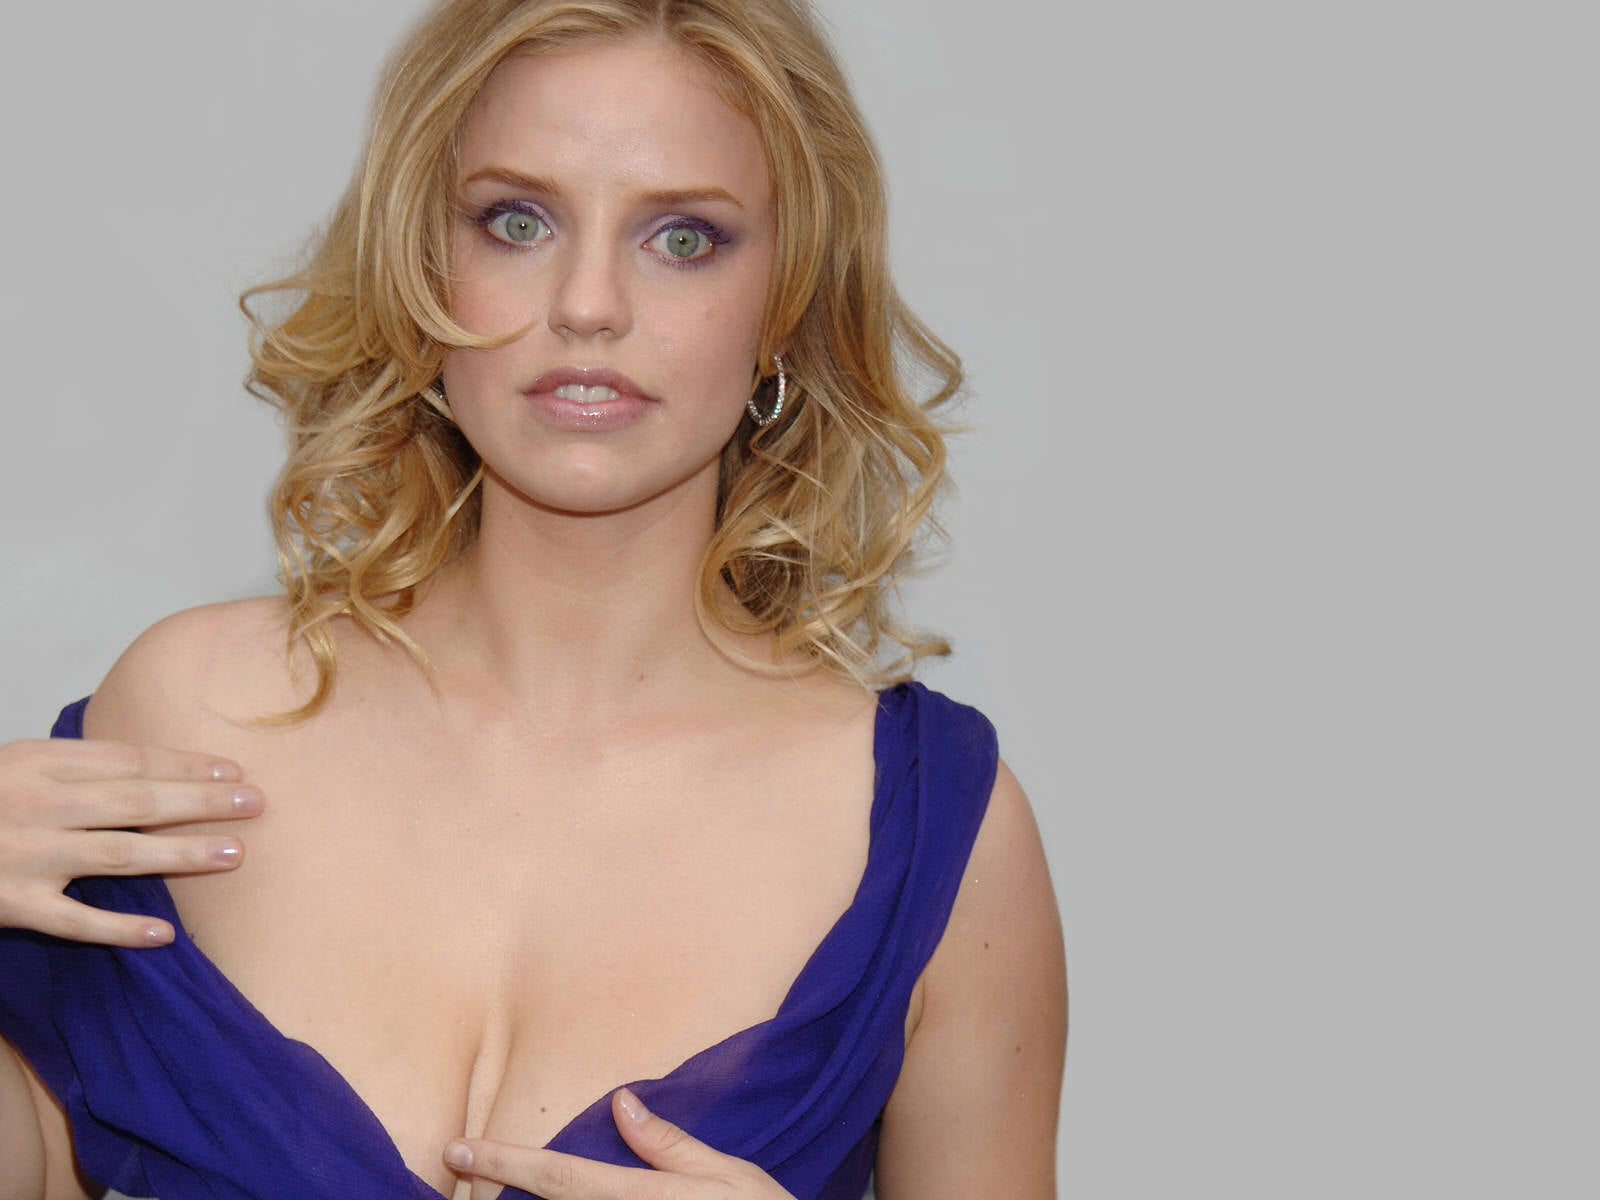 Kelli garner photos and pictures